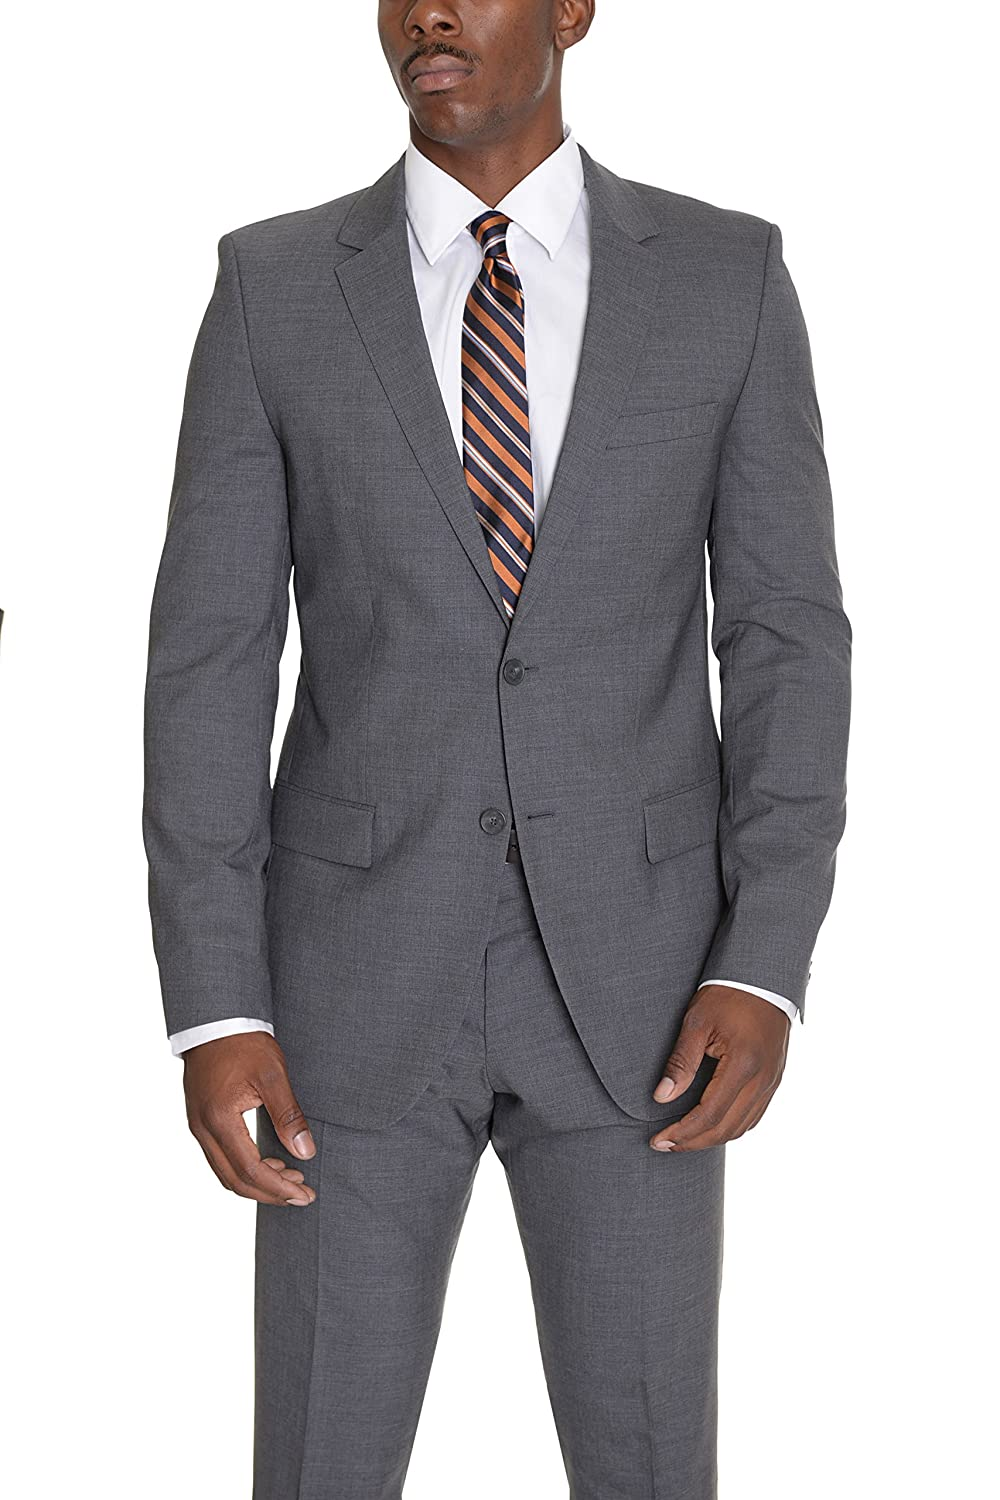 7d33a5b16 Hugo Boss Aamon/hago Slim Fit Heather Gray Two Button Stetch Wool Suit well-